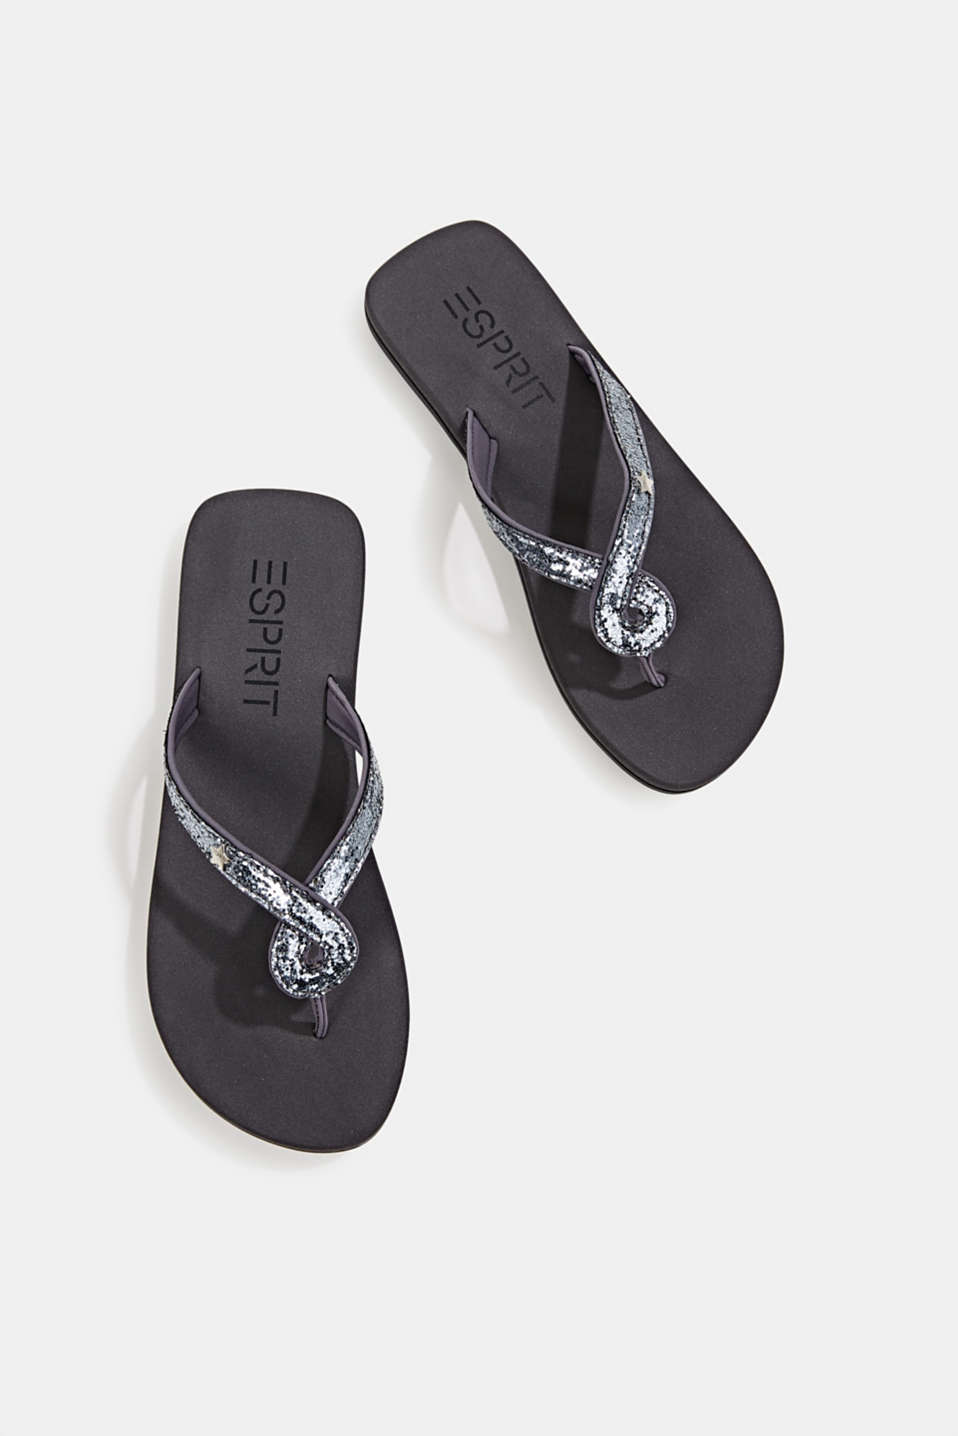 Slip slops with glittery straps, GREY, detail image number 1